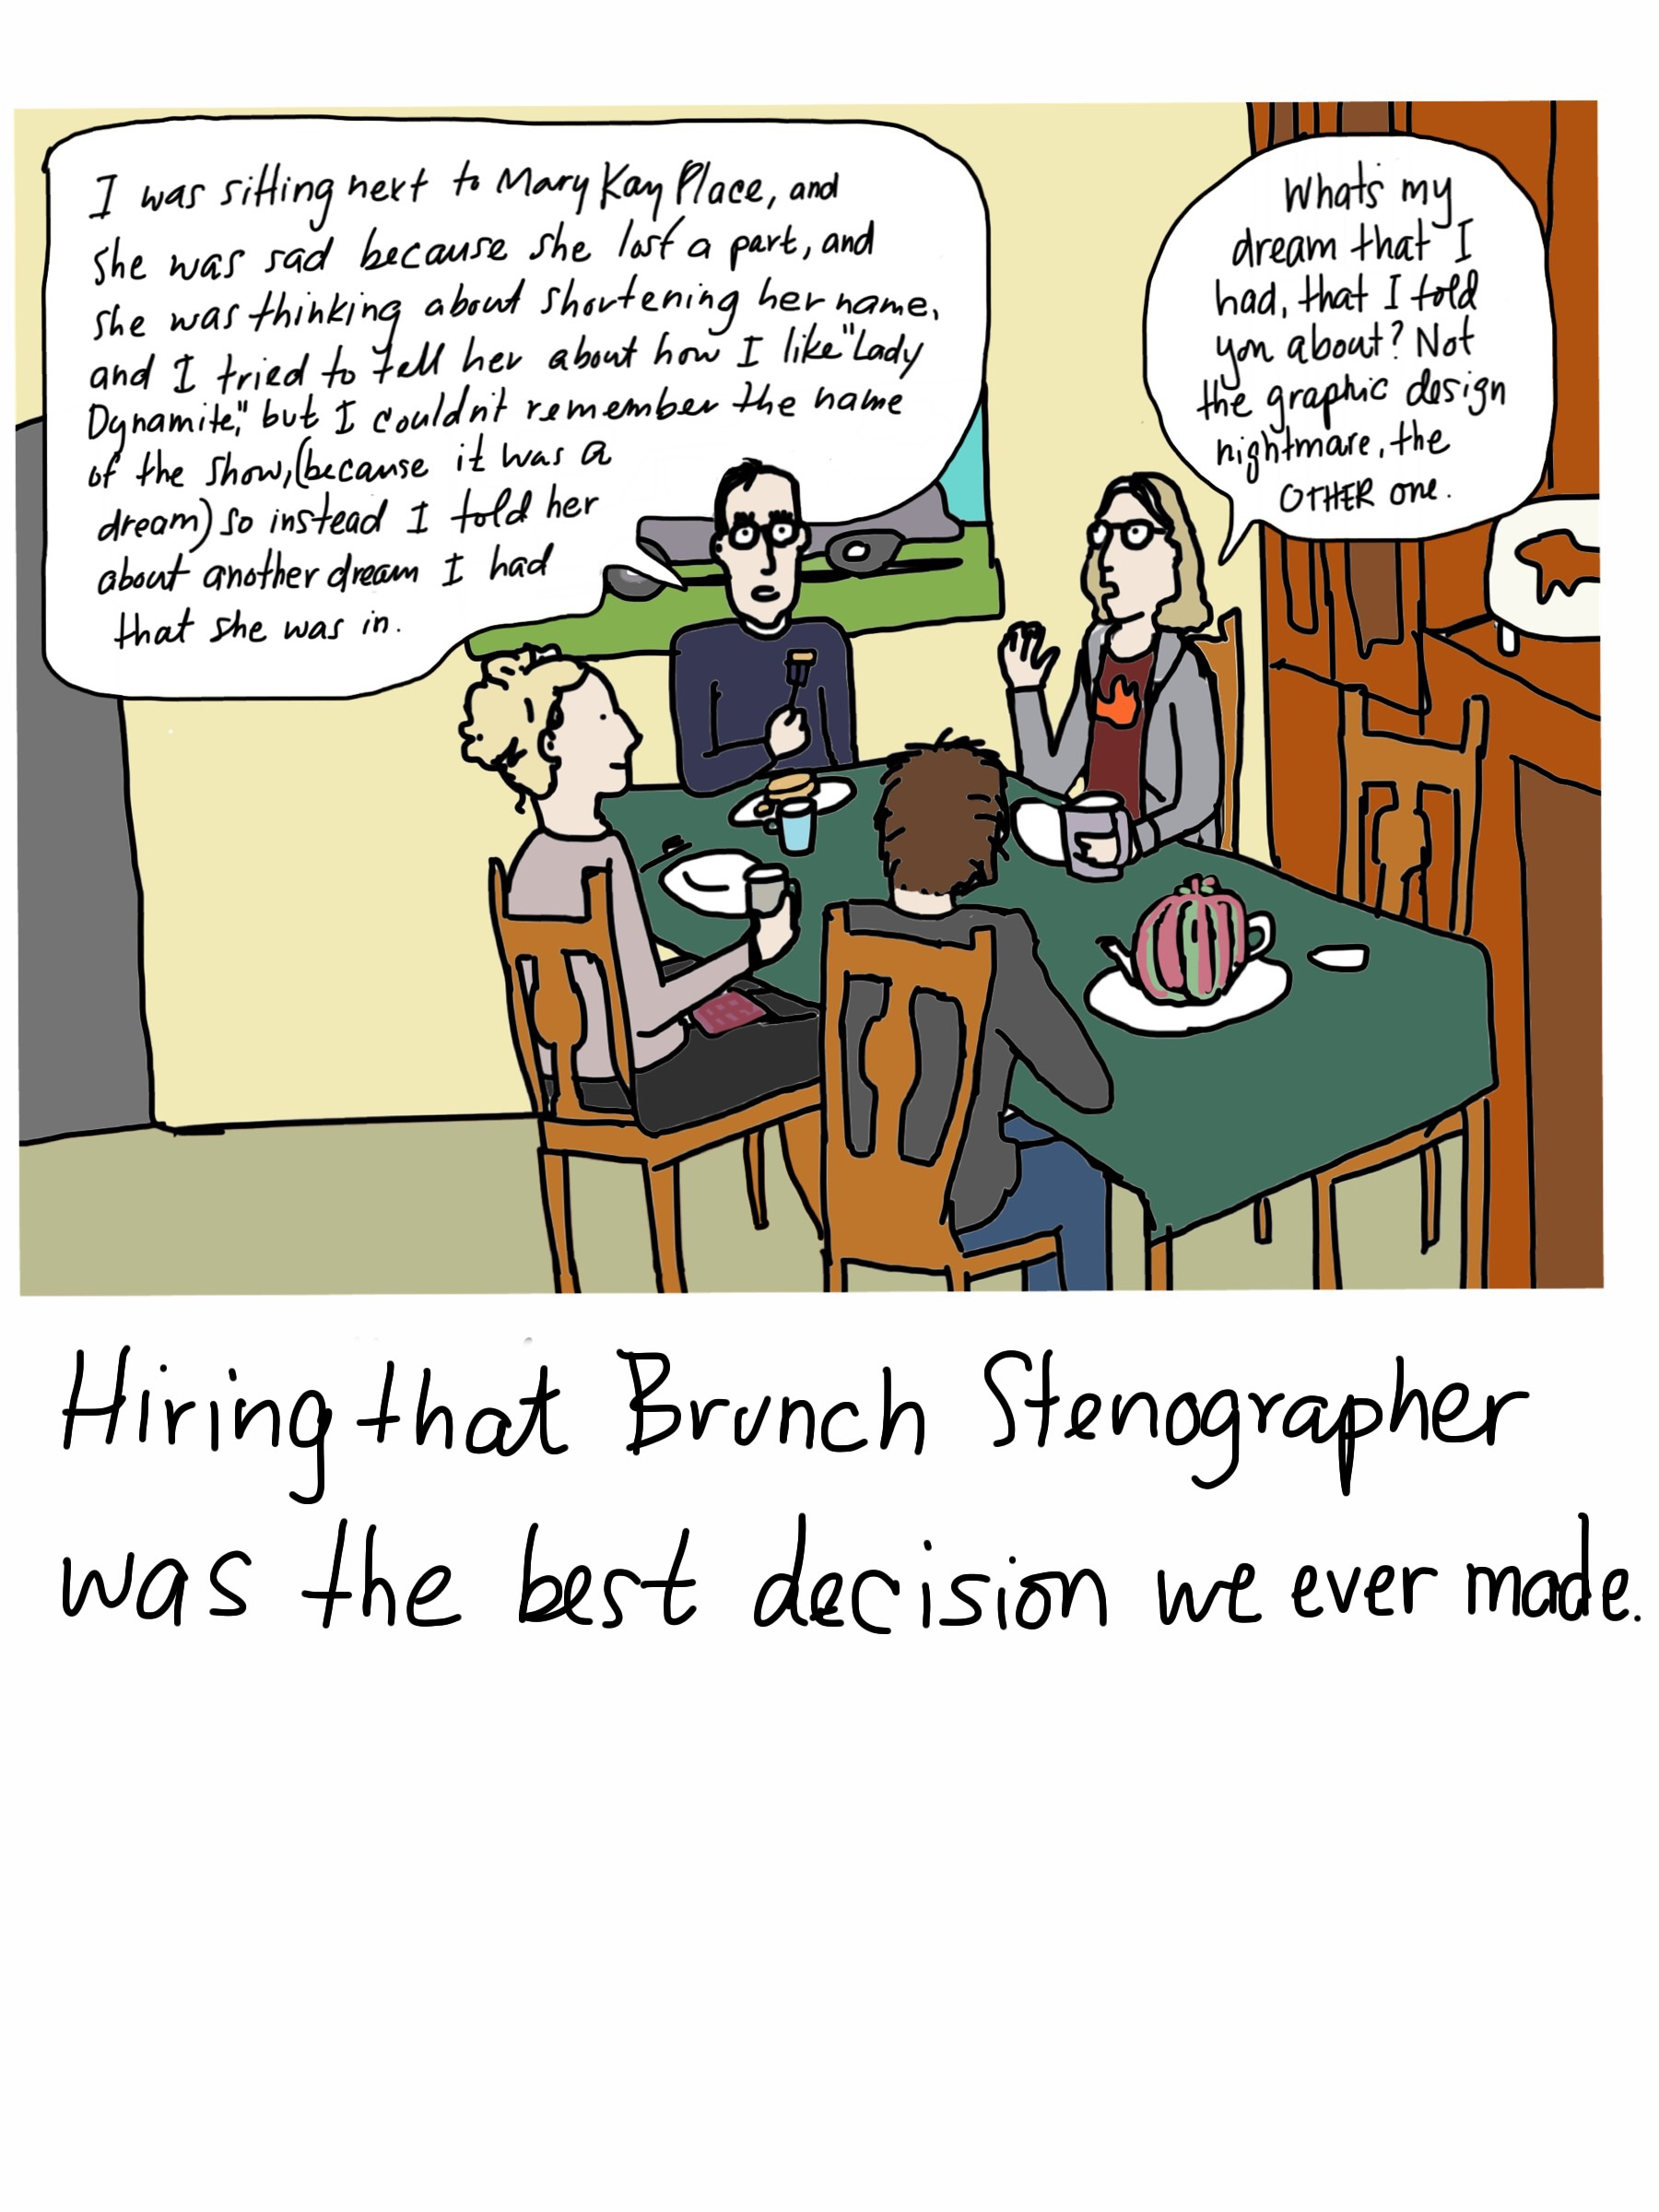 The folly of hiring a brunch stenographer